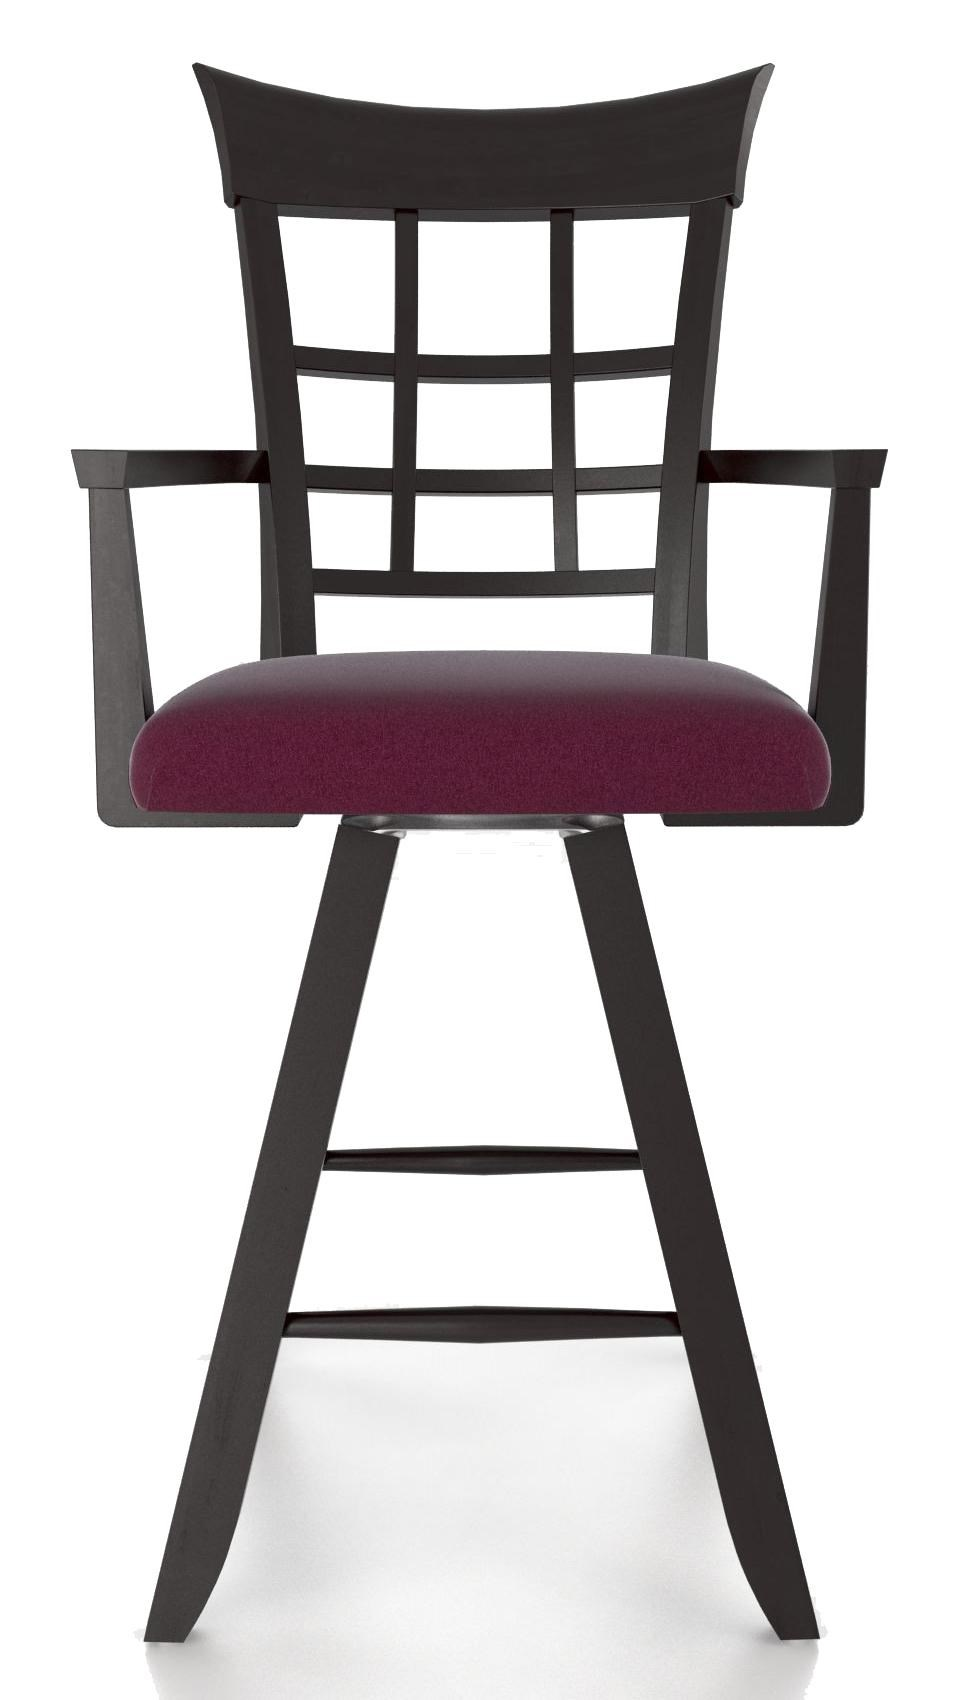 Canadel Bar Stools Customizable 24quot Upholstered Swivel  : products2Fcanadel2Fcolor2Fbar20stools20stosto02276tf05m24sa b0jpgscalebothampwidth500ampheight500ampfsharpen25ampdown from www.wilsonhomefurnishings.com size 500 x 500 jpeg 20kB